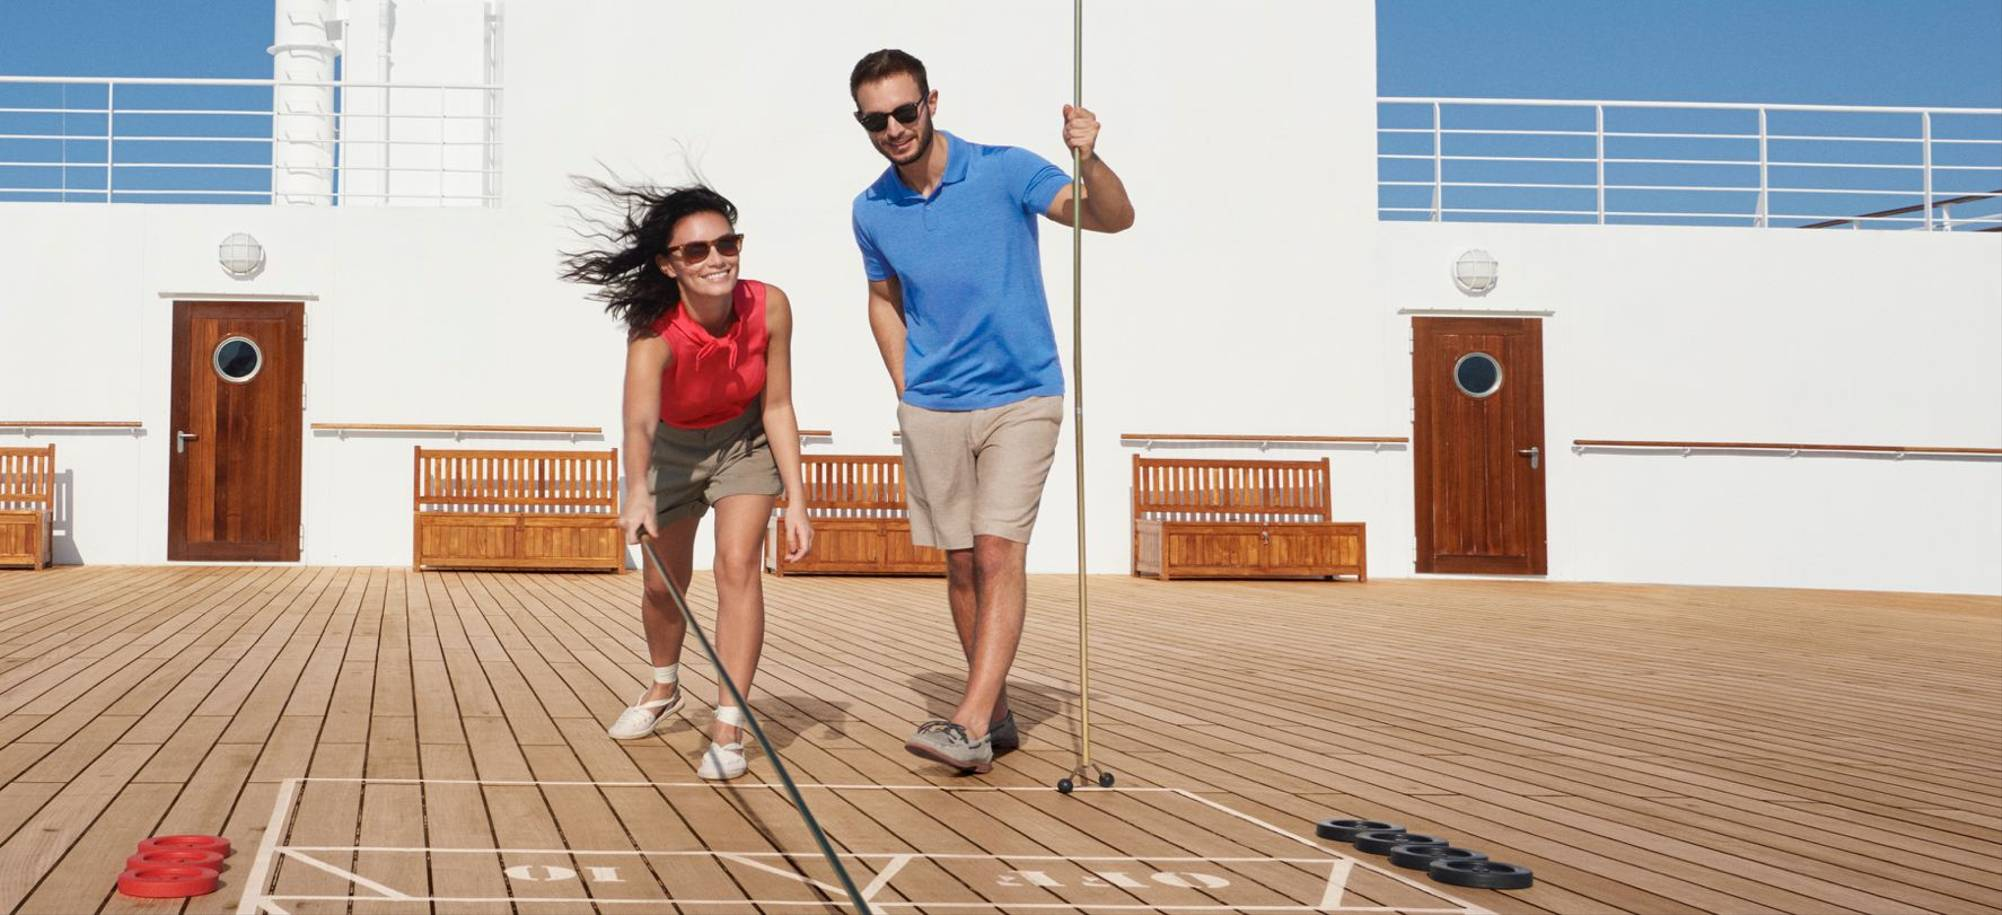 23 26 Day   At Sea   Shuffleboard On Deck   Itinerary Desktop